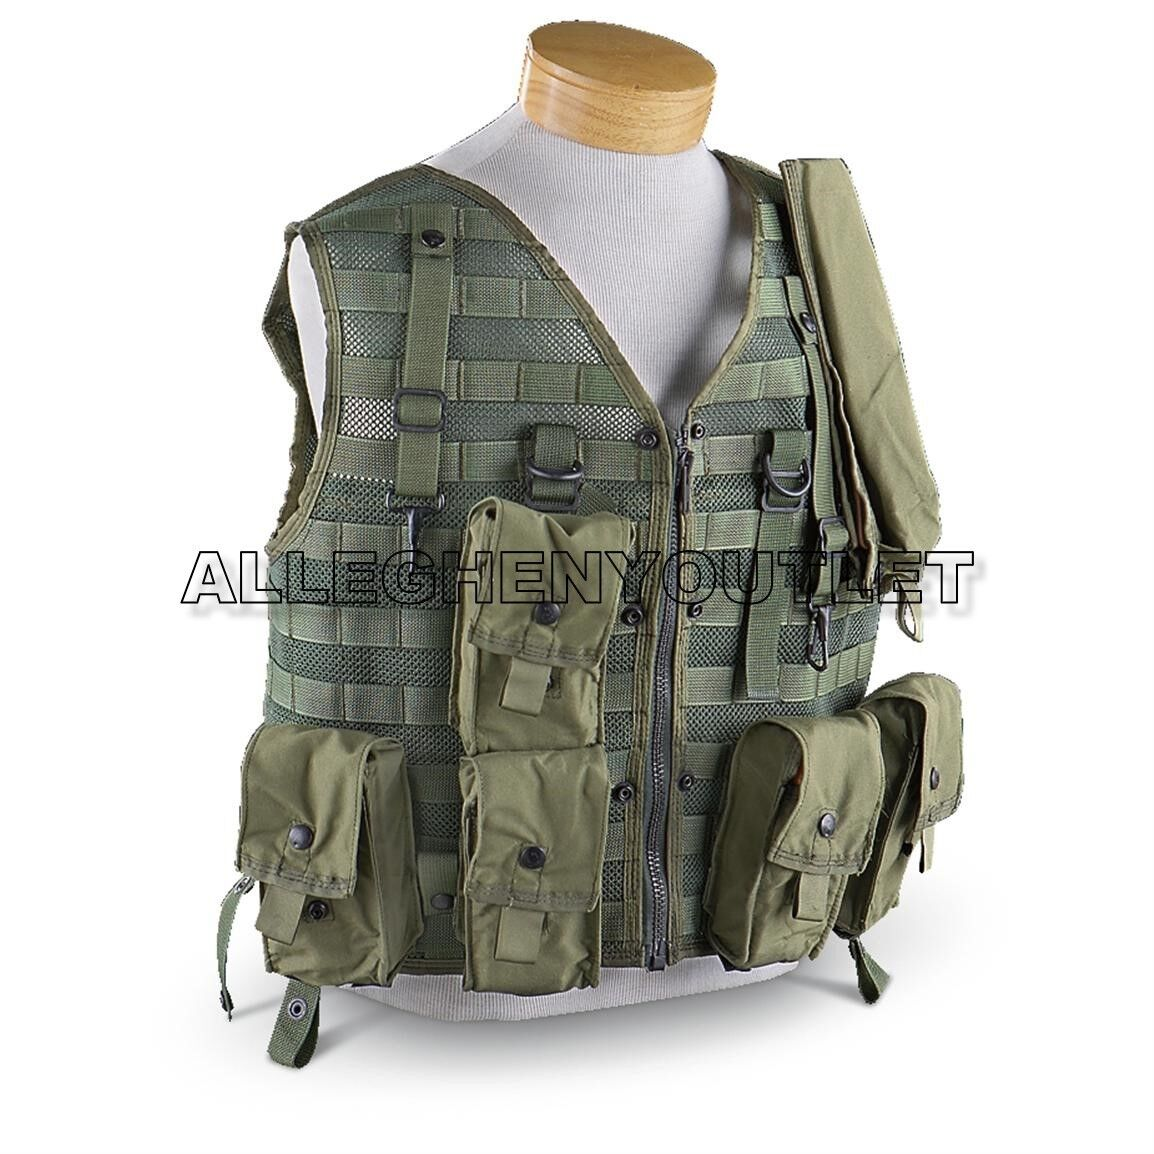 CMU-33 P22P-18 SURVIVAL VEST US ARMY AIRCREW  AIRCRAFT VEST ONLY NEW  very popular